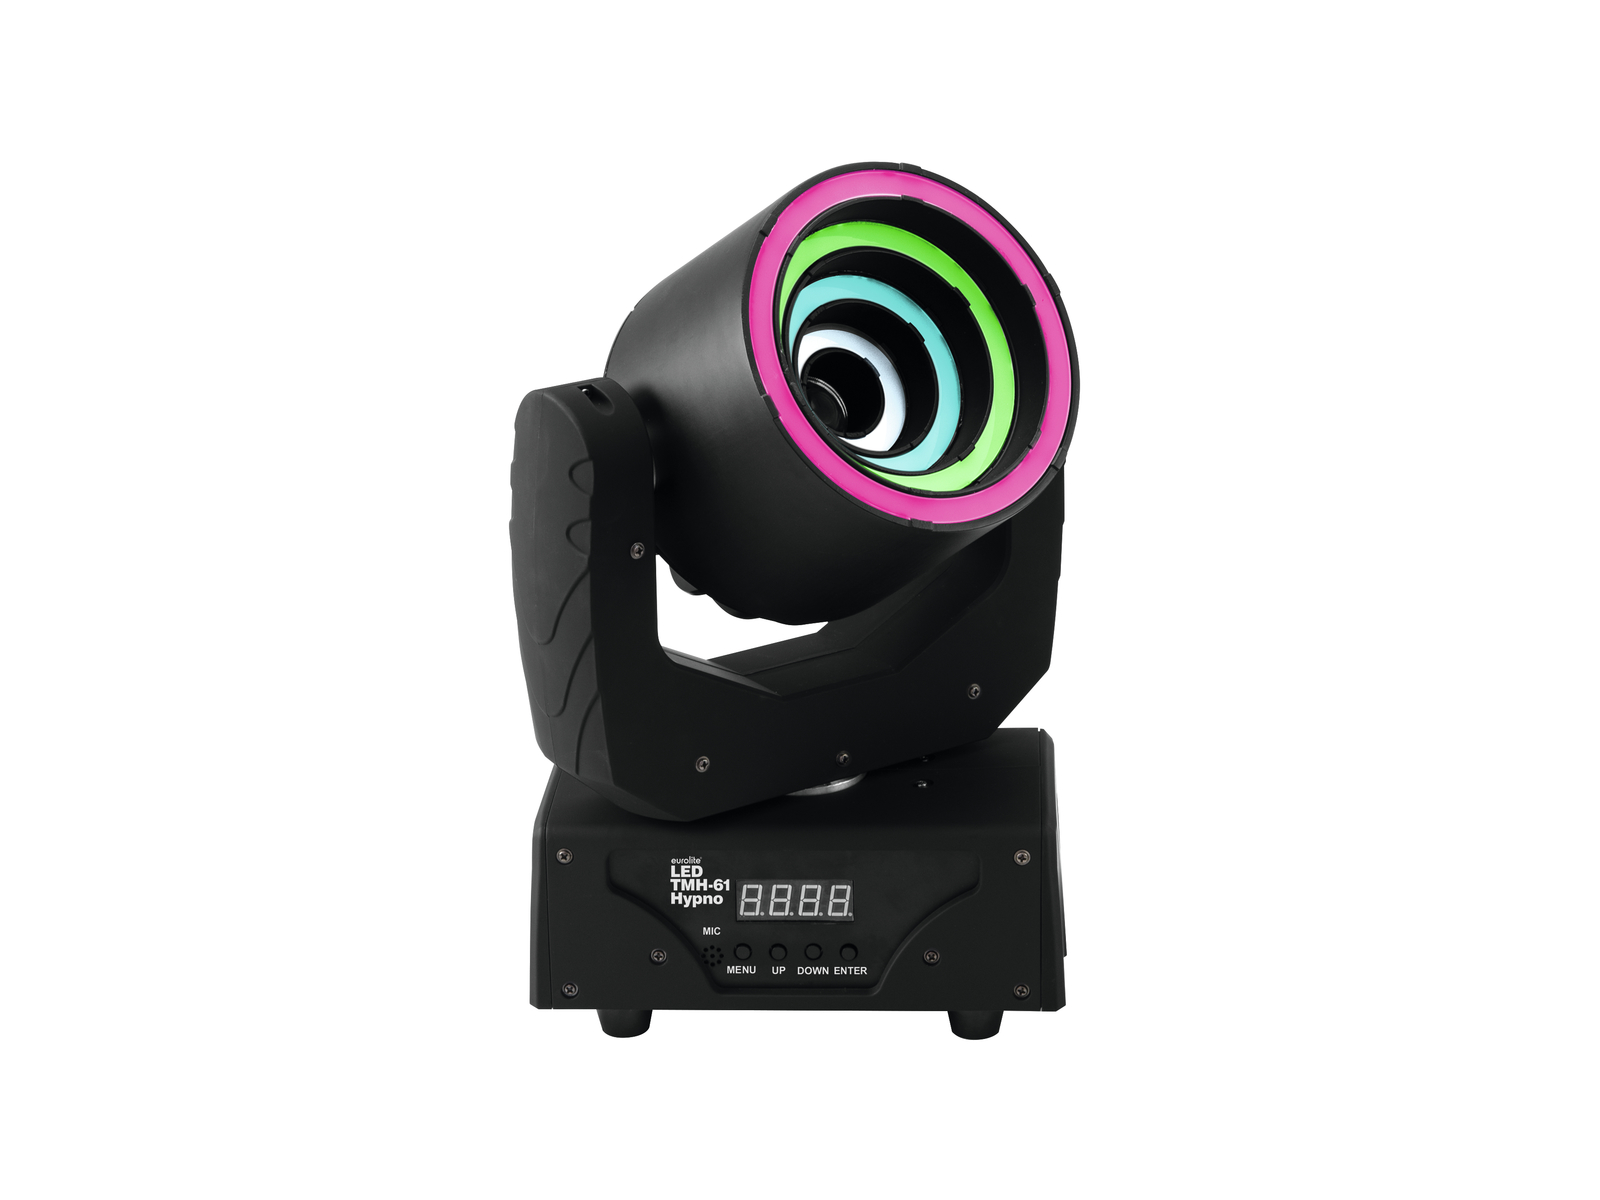 EUROLITE LED TMH-61 Hypno Test